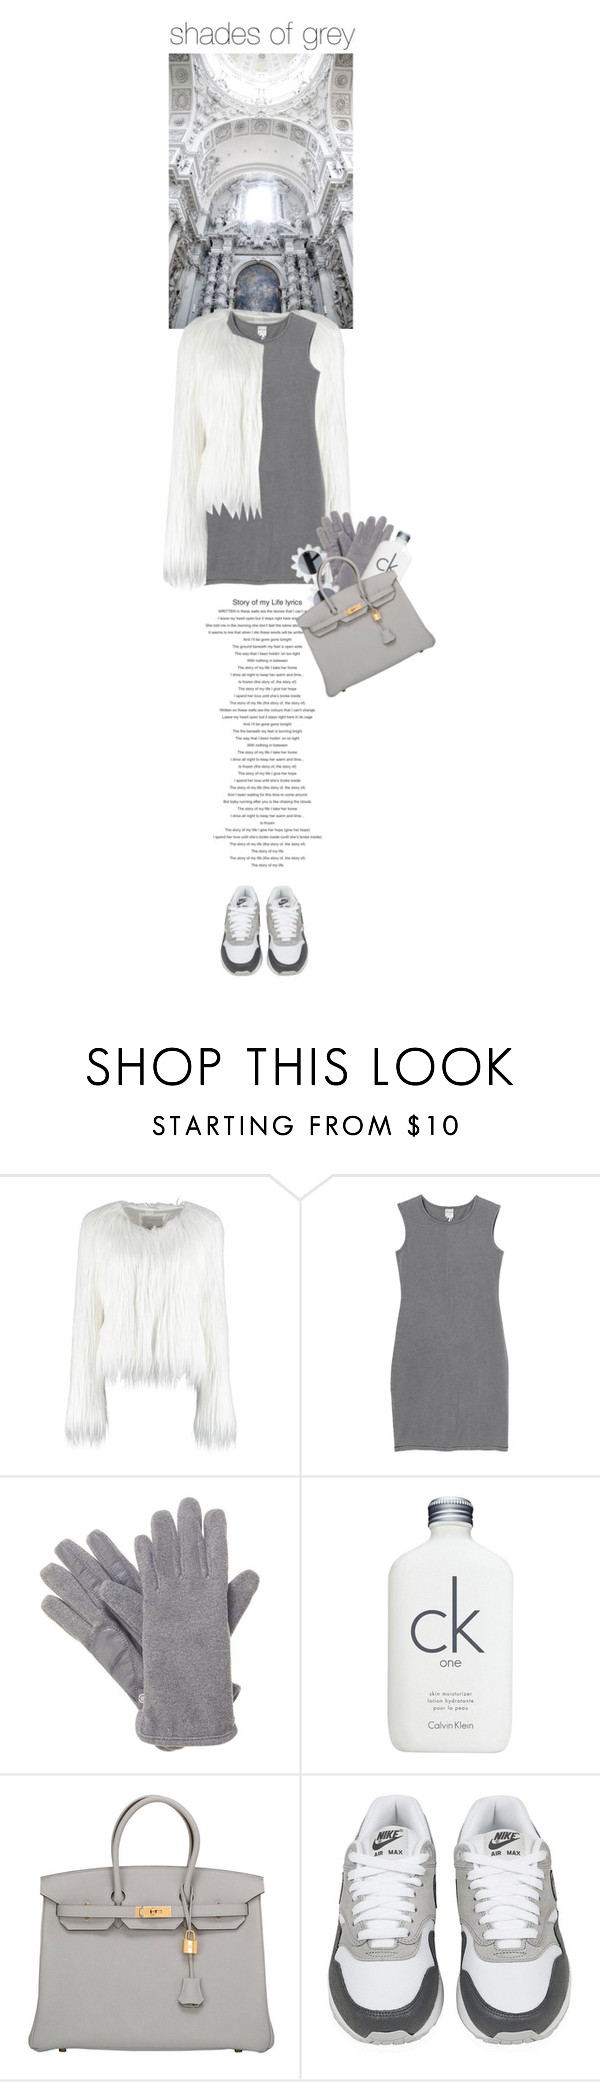 """shades of grey"" by rosa-loves-skittles ❤ liked on Polyvore featuring Monki, Isotoner, Moschino Cheap & Chic, Calvin Klein, Hermès, NIKE, women's clothing, women, female and woman"